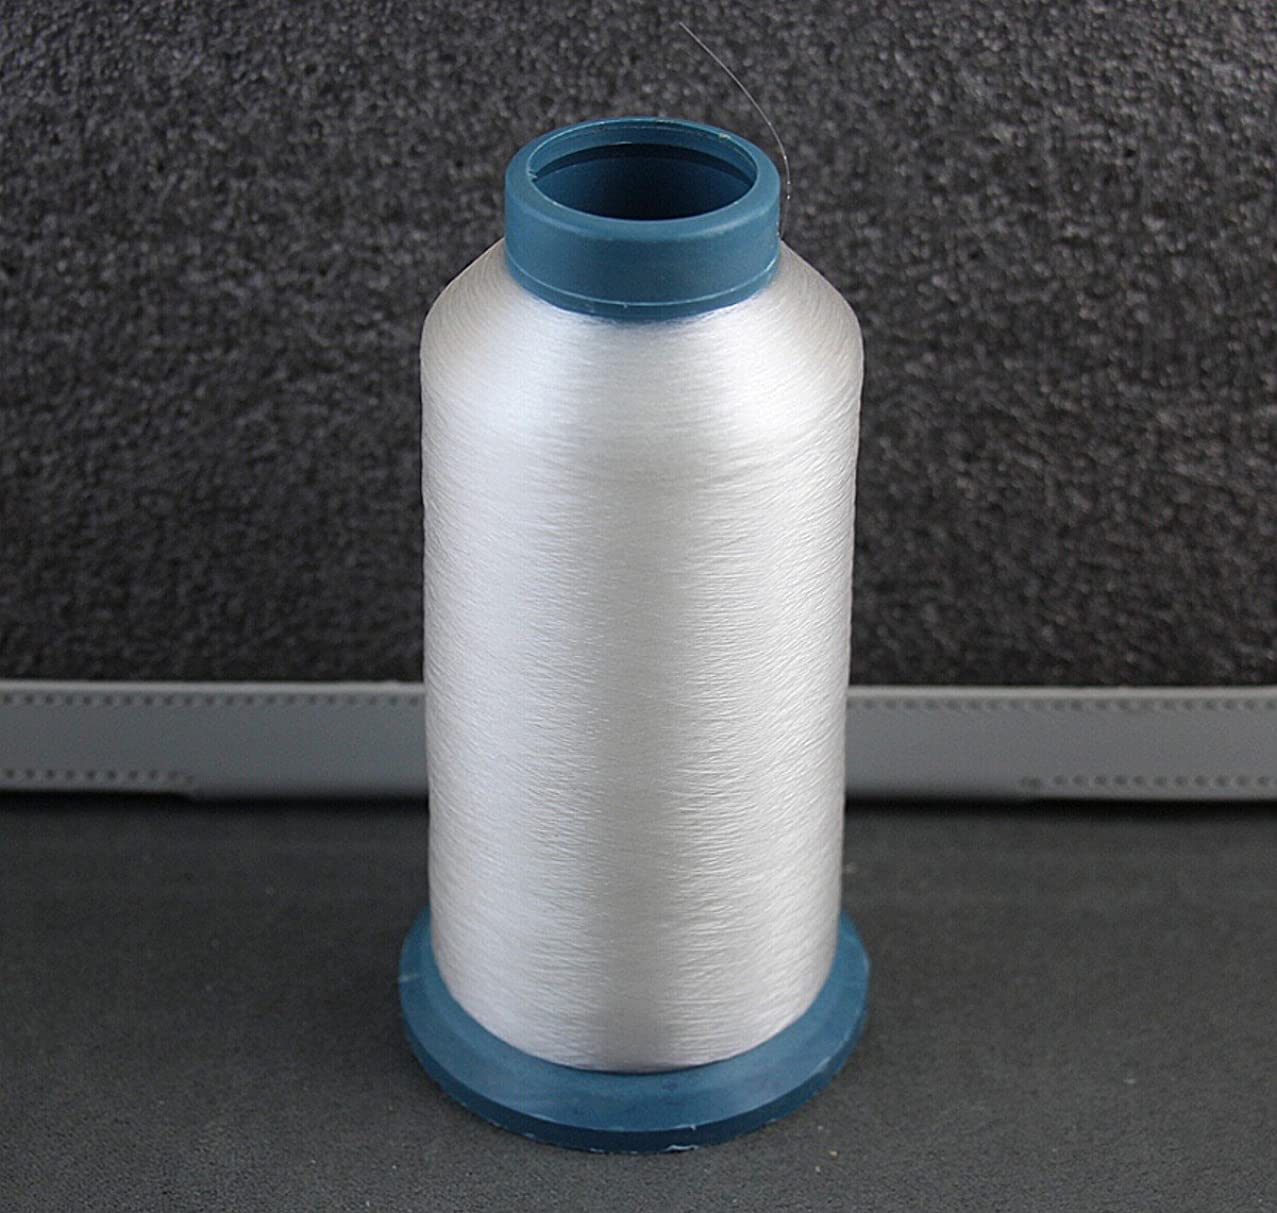 1 Spool 4380 yards 0.1mm Clear White Quilter`s invisible 100% nylon monofilament thread,Monofilament Thread, Clear Invisible Transparent 100% Nylon,Quilting Thread~ free shipping